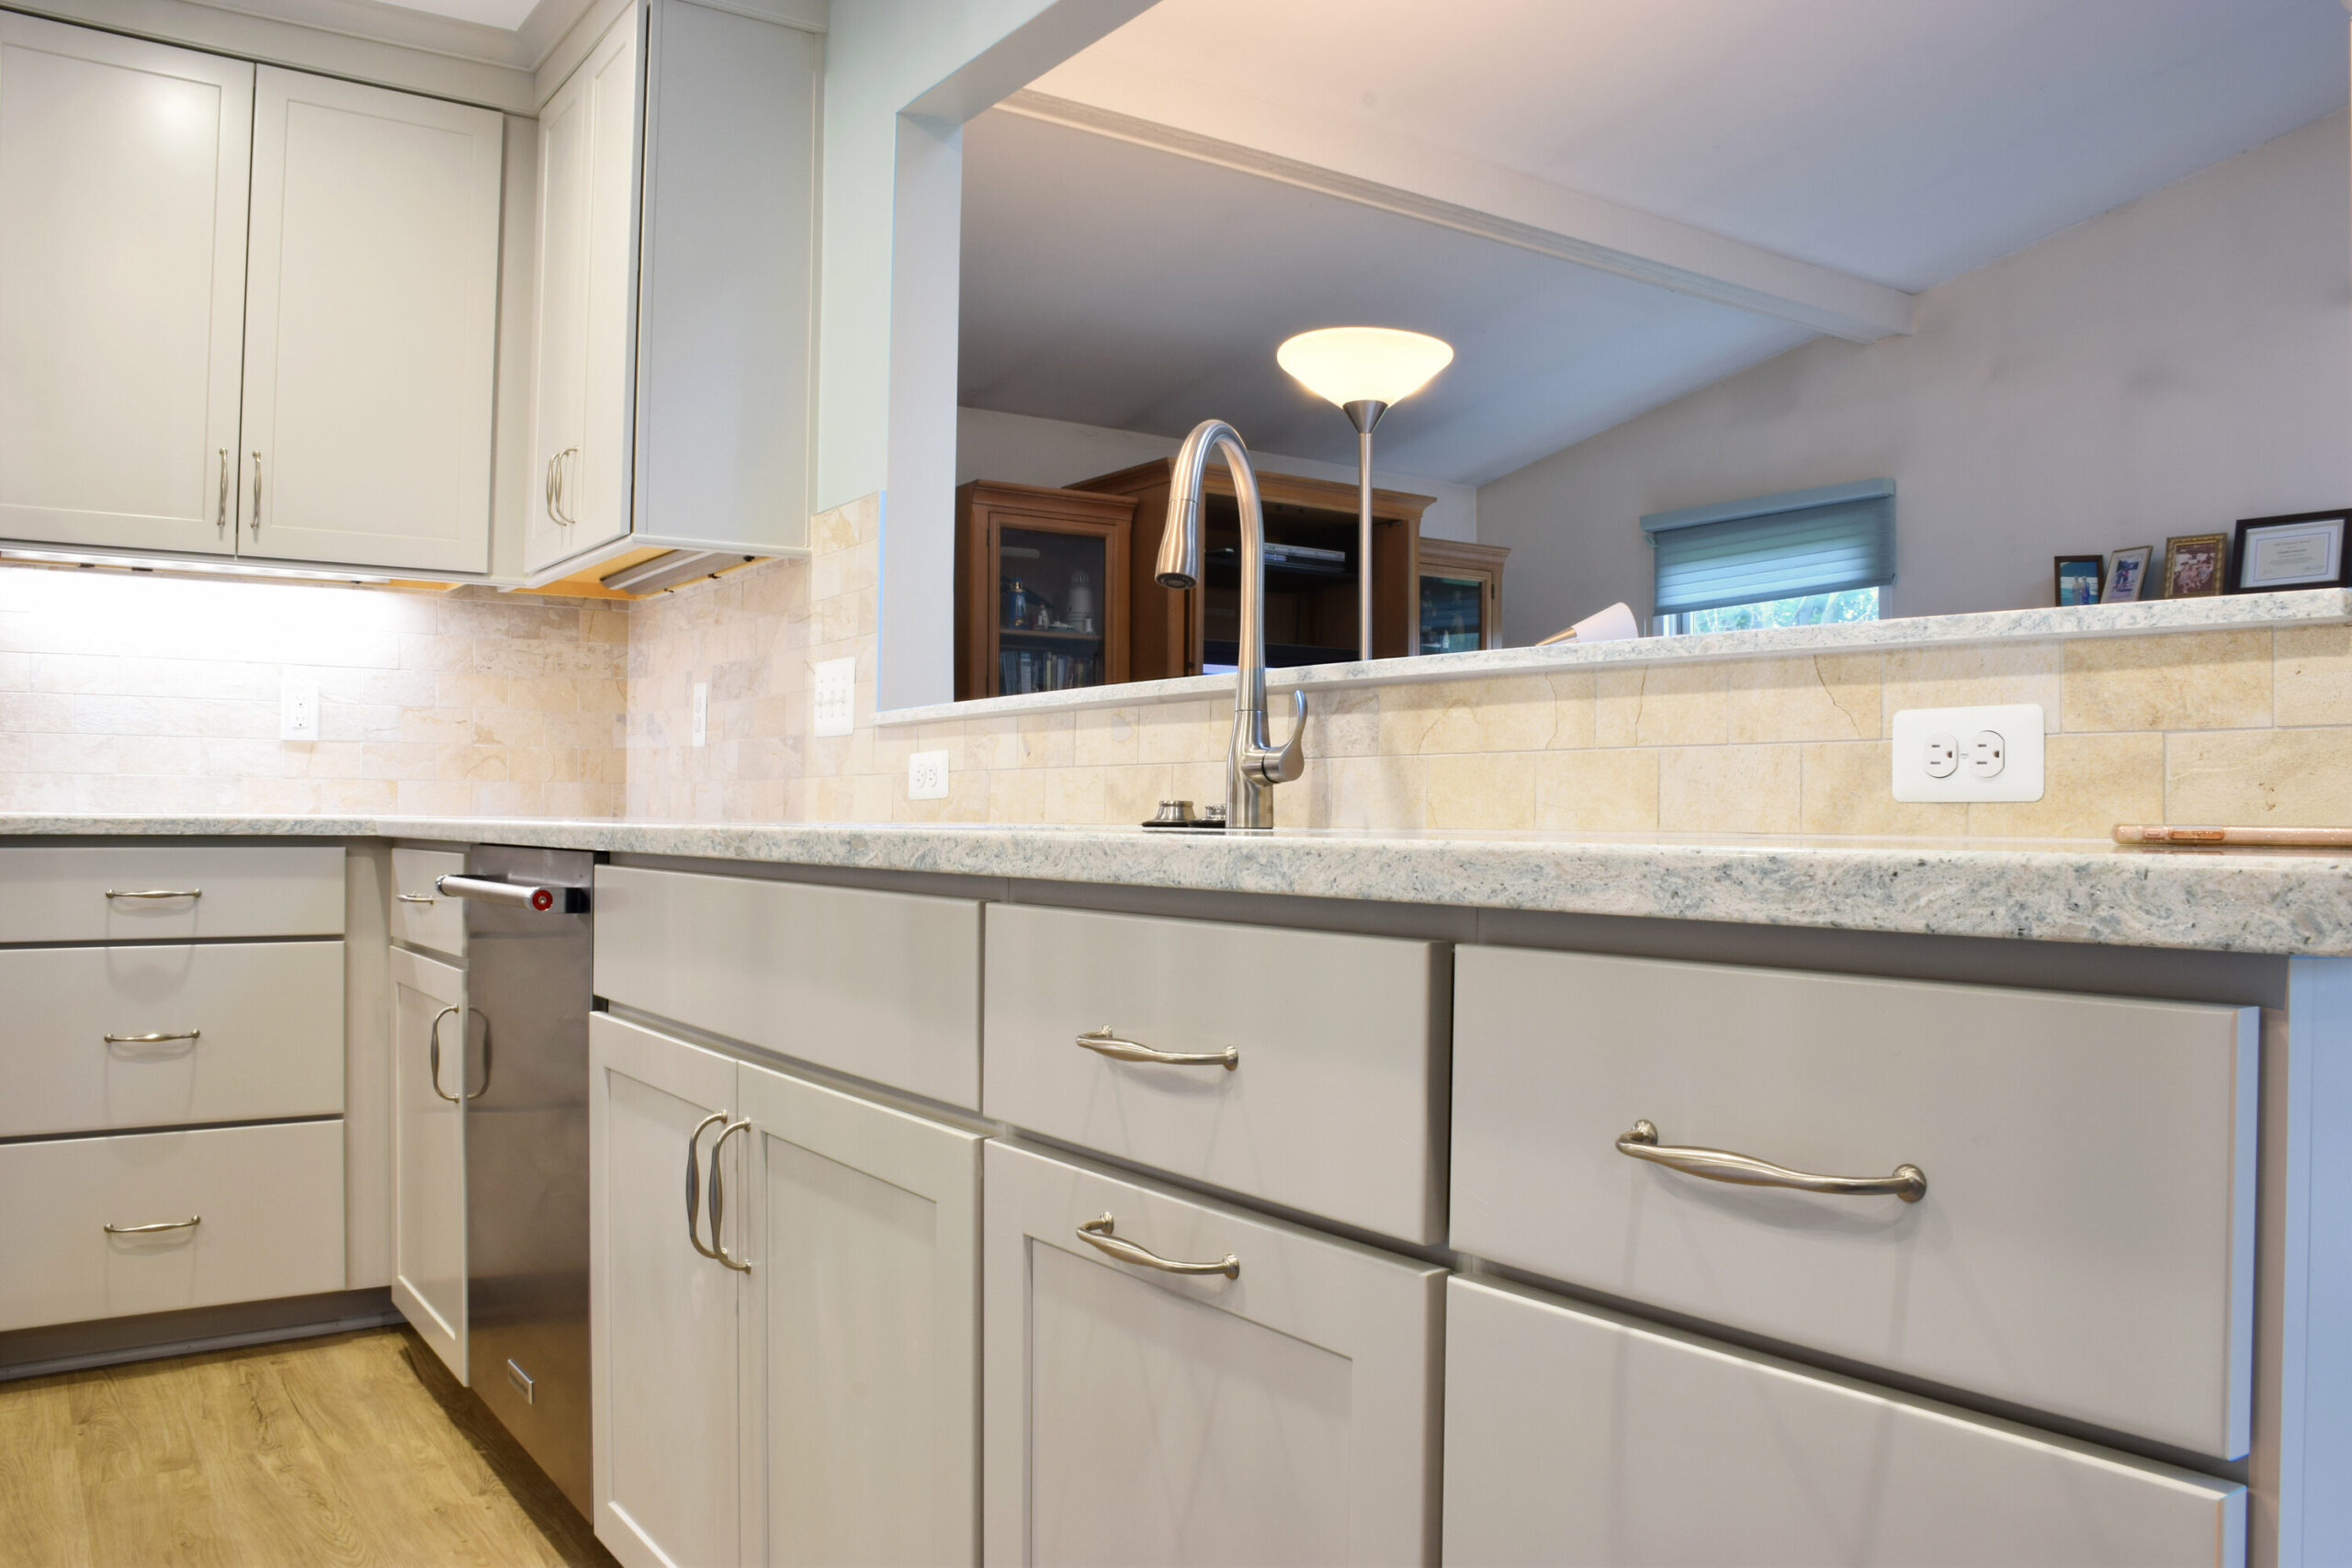 Rochester Hills Kitchen Remodeling Pass Through Close Up